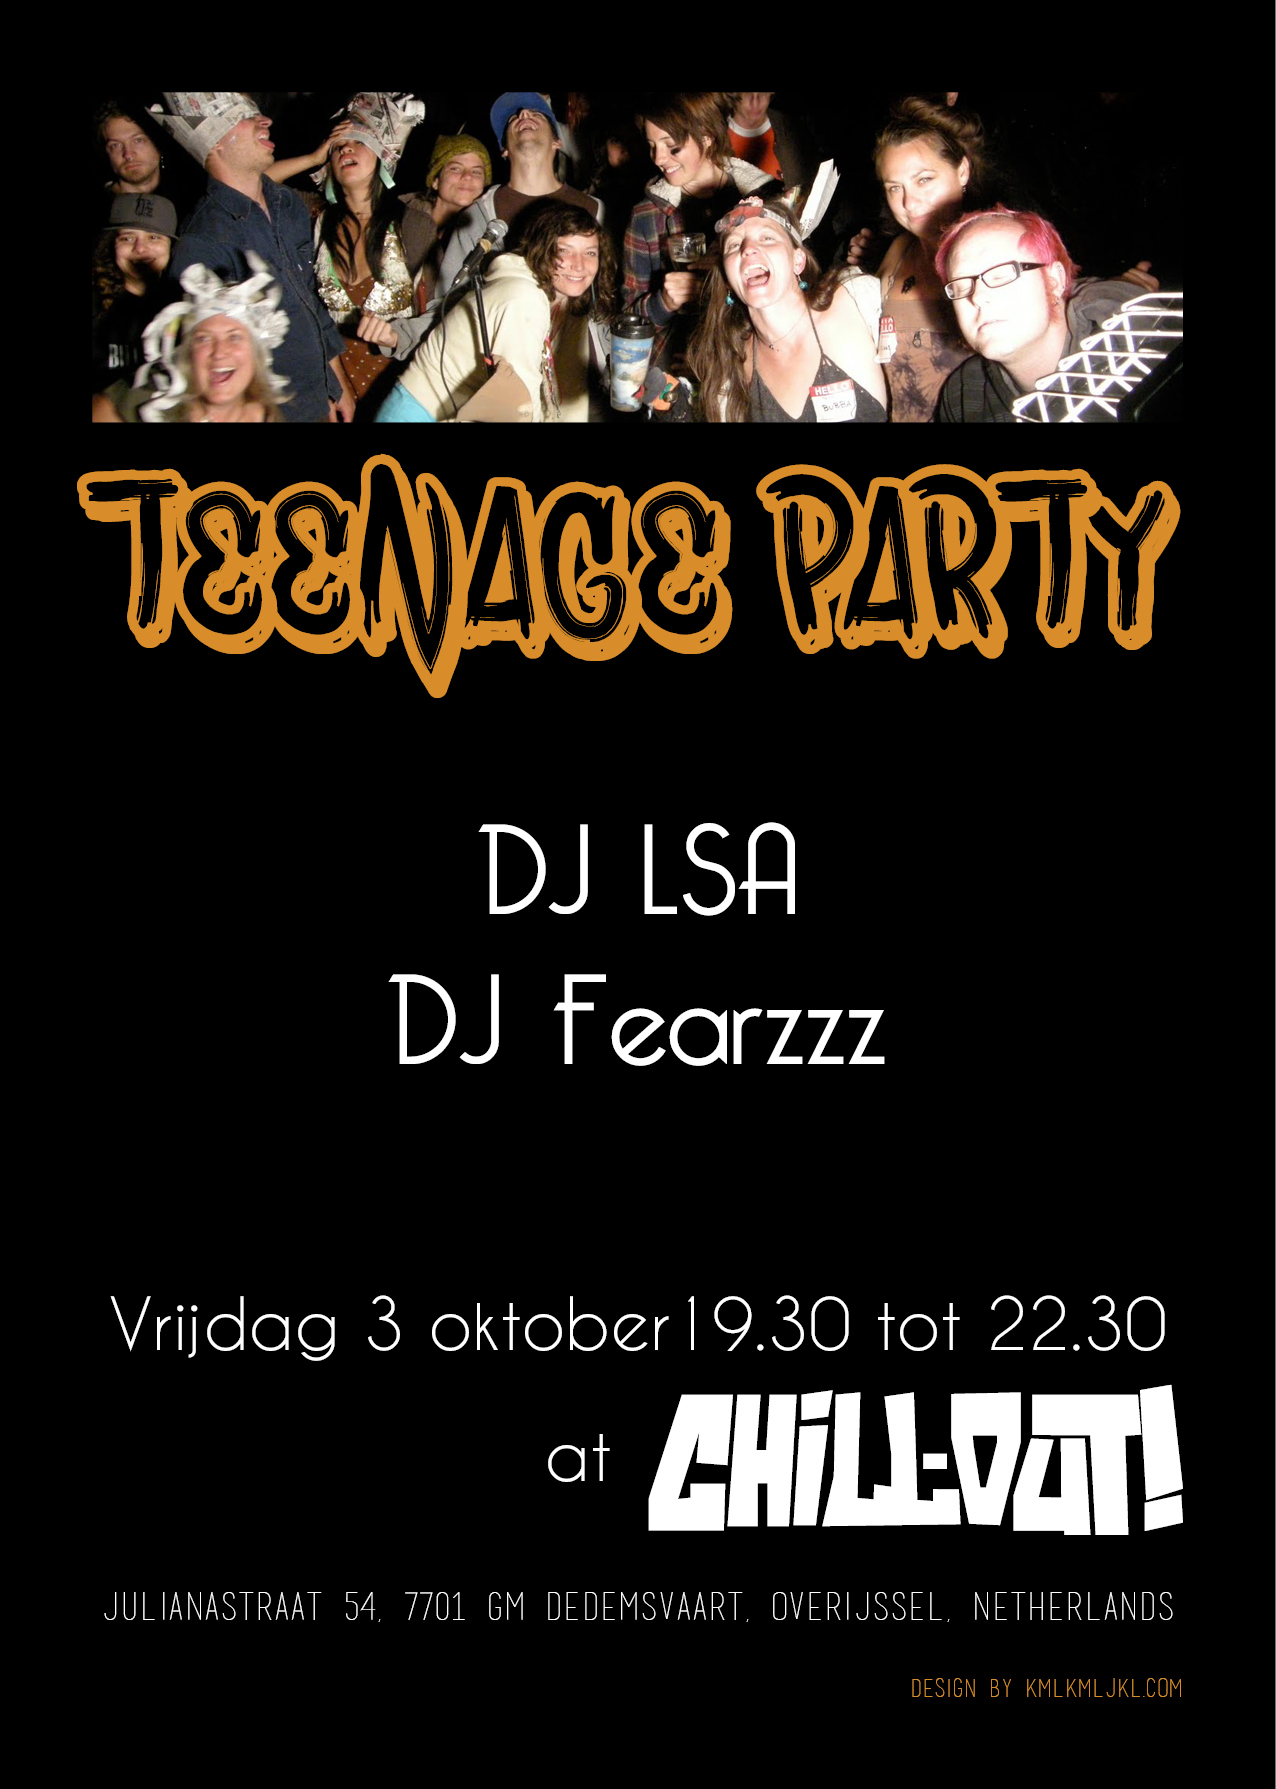 teenagepartyposter